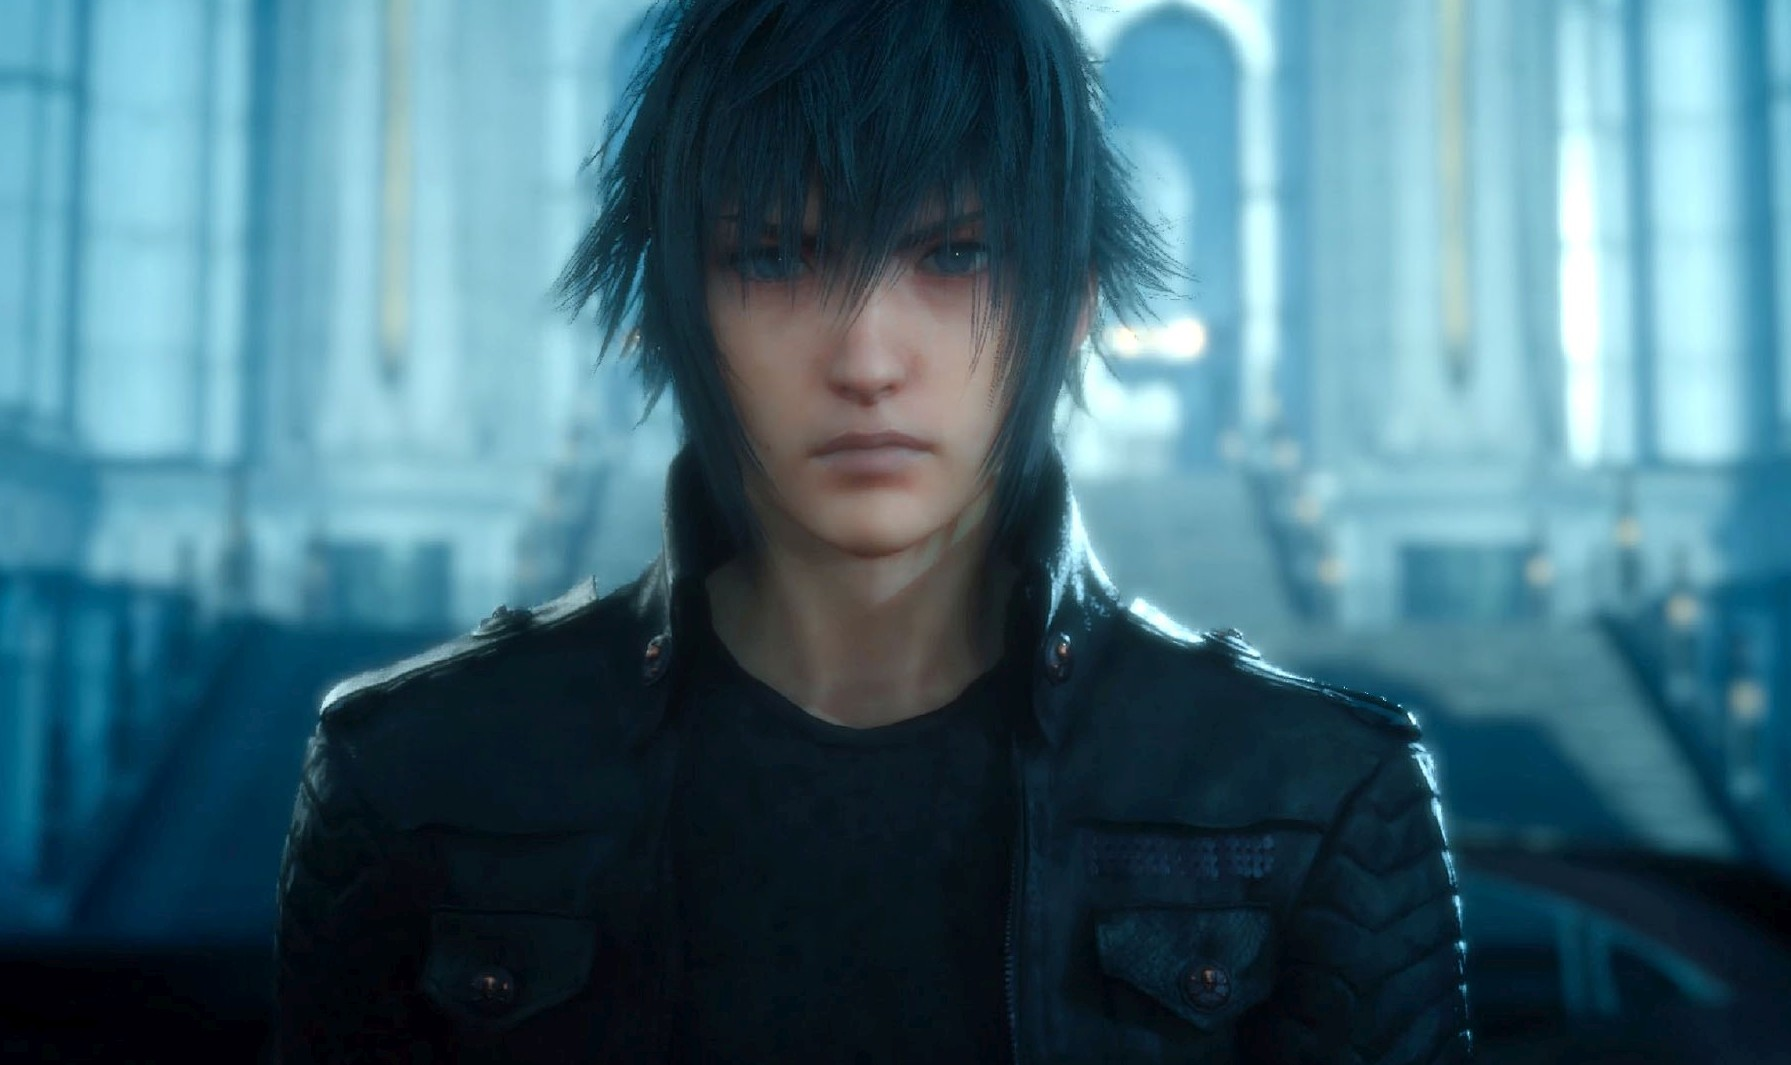 Final Fantasy XV Aiming for 1080p/60 FPS and 4K/30 FPS Modes